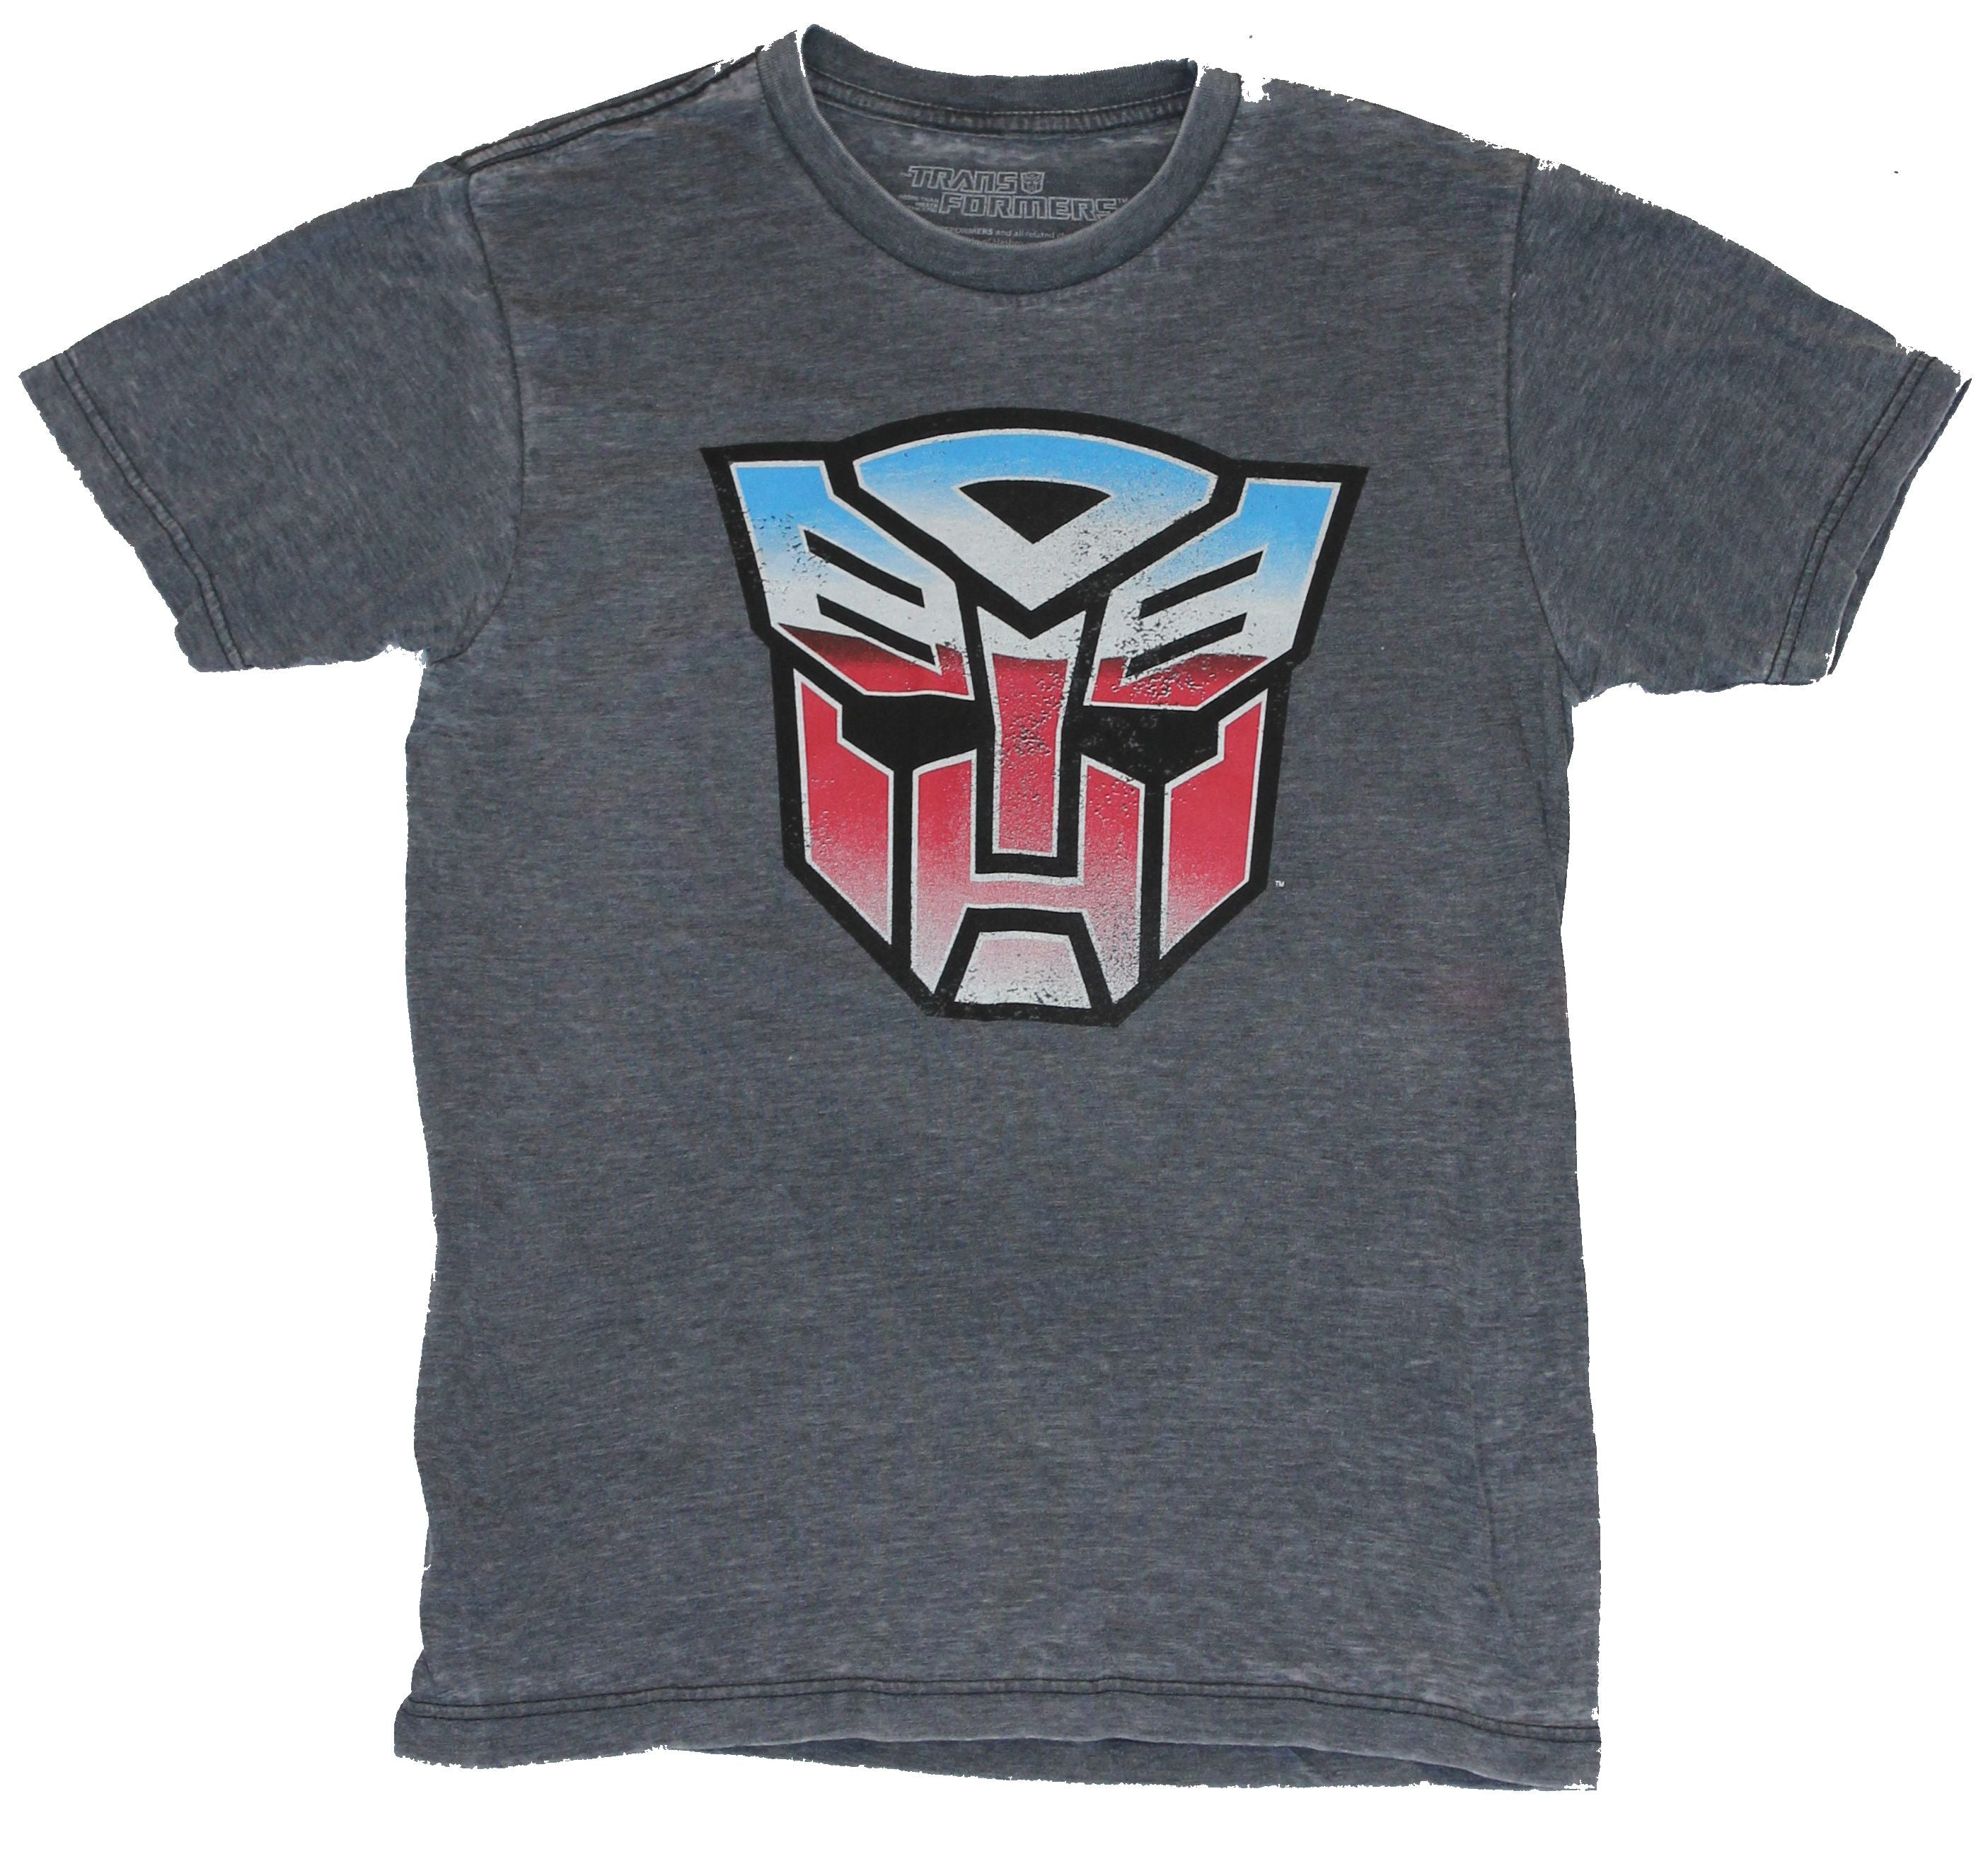 Transformers Mens T-Shirt - Classic Autobot Red Blue White Logo